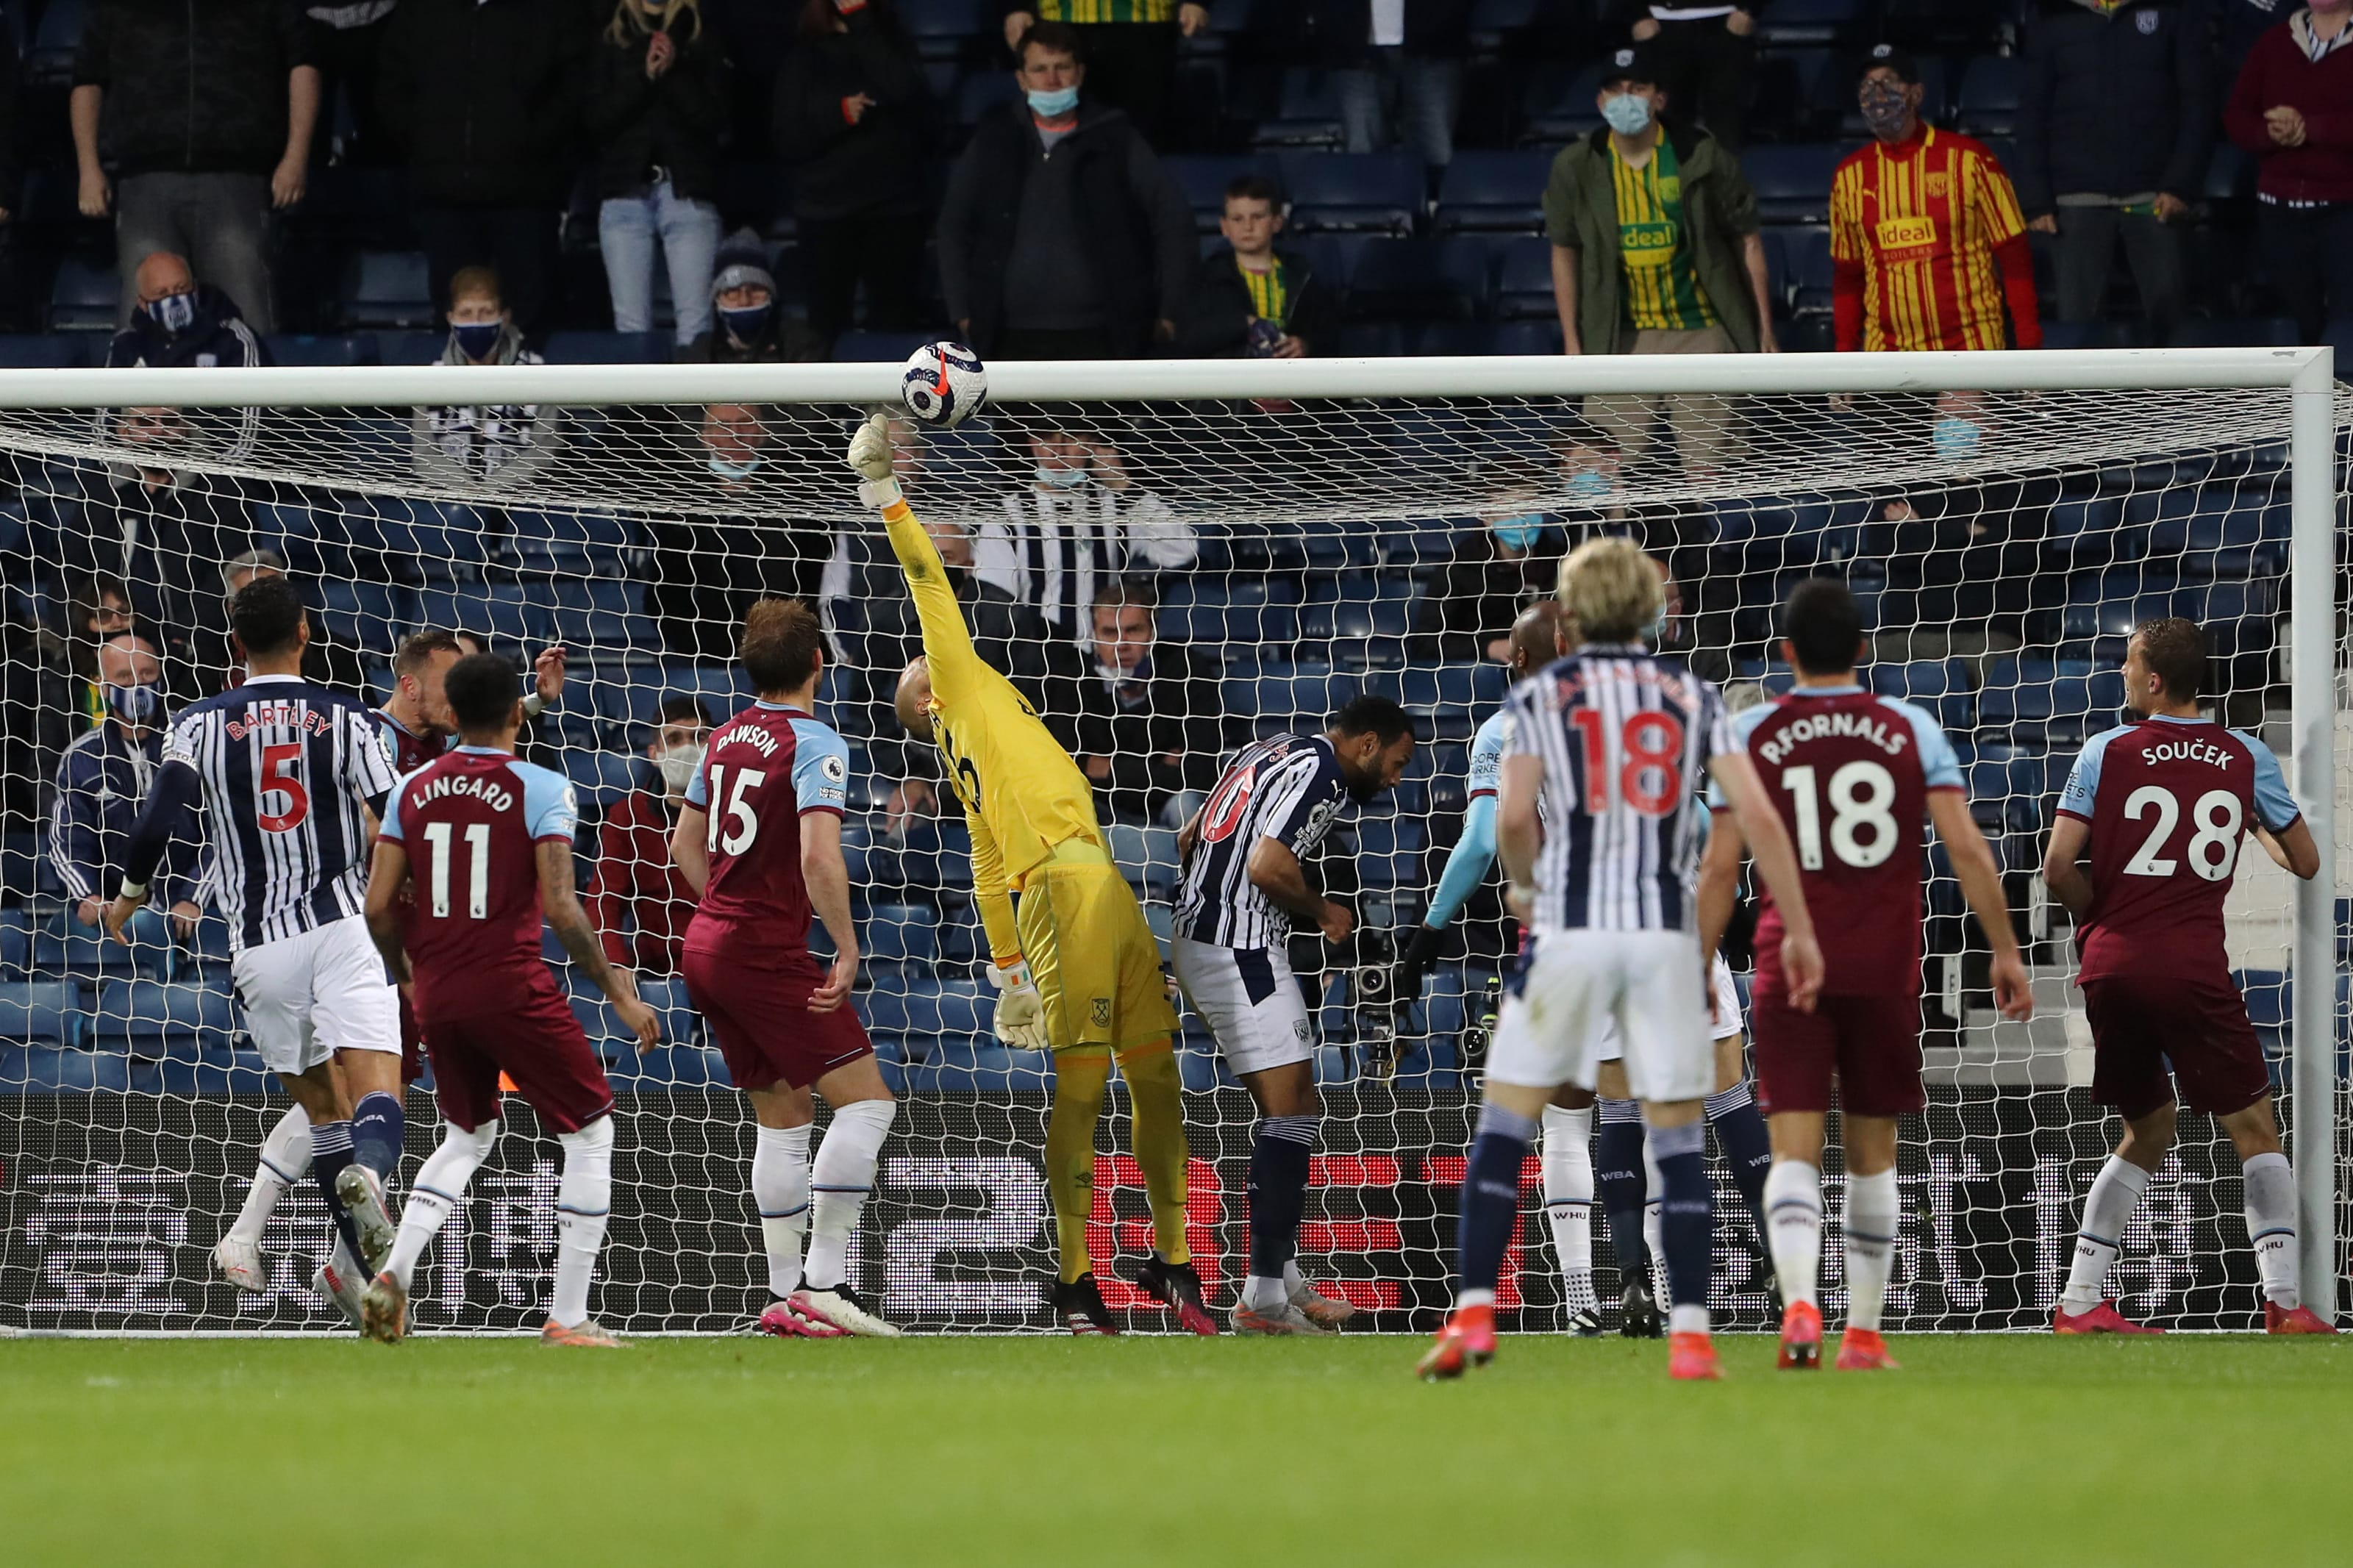 Darren Randolph of West Ham United makes a save. (Photo by Geoff Caddick - Pool/Getty Images)